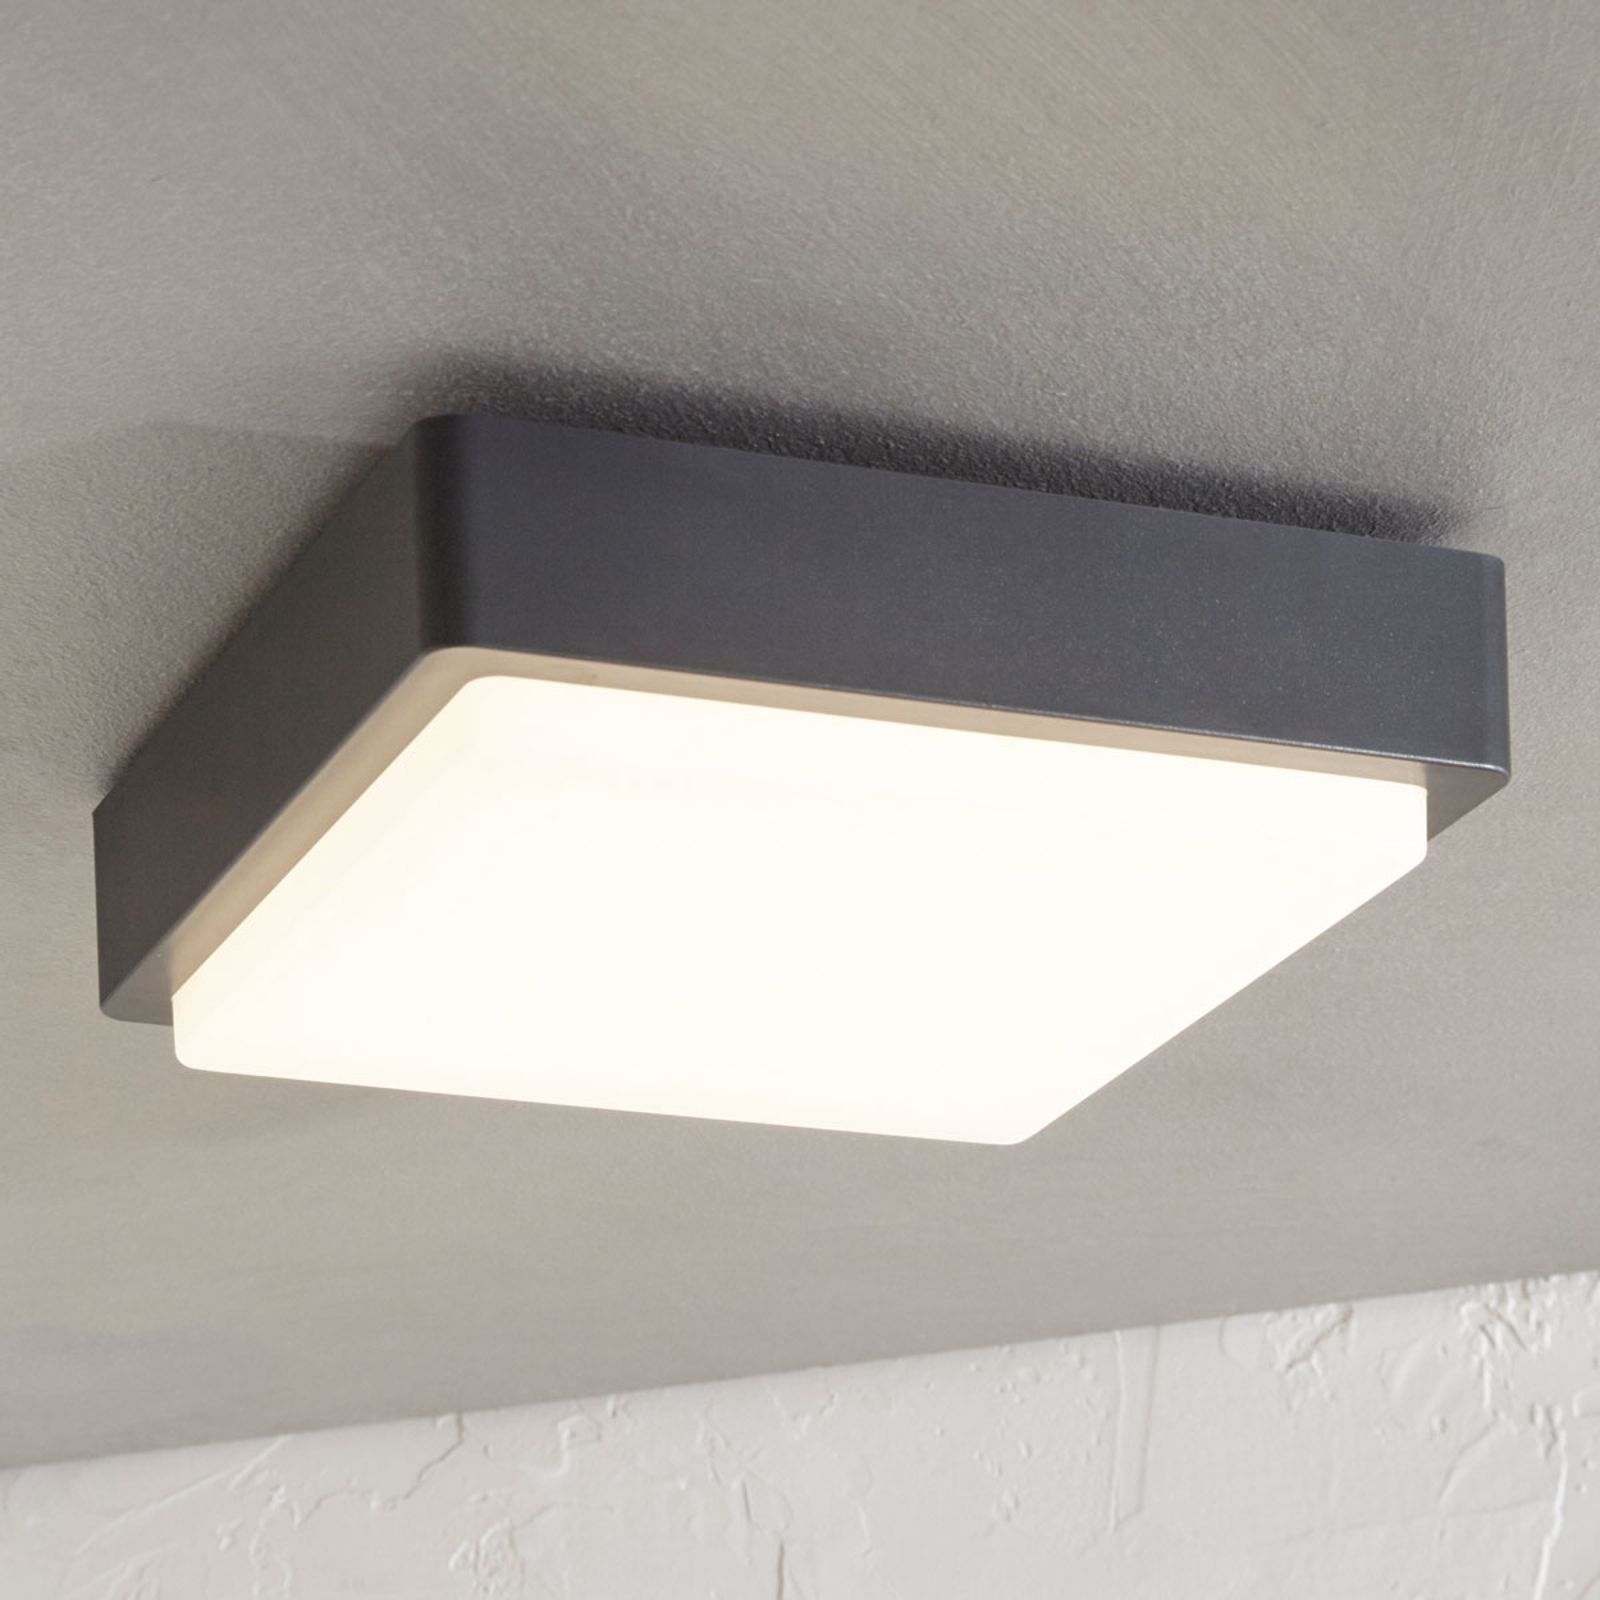 Nermin LED outdoor ceiling lamp, IP65, angular_9949012_1